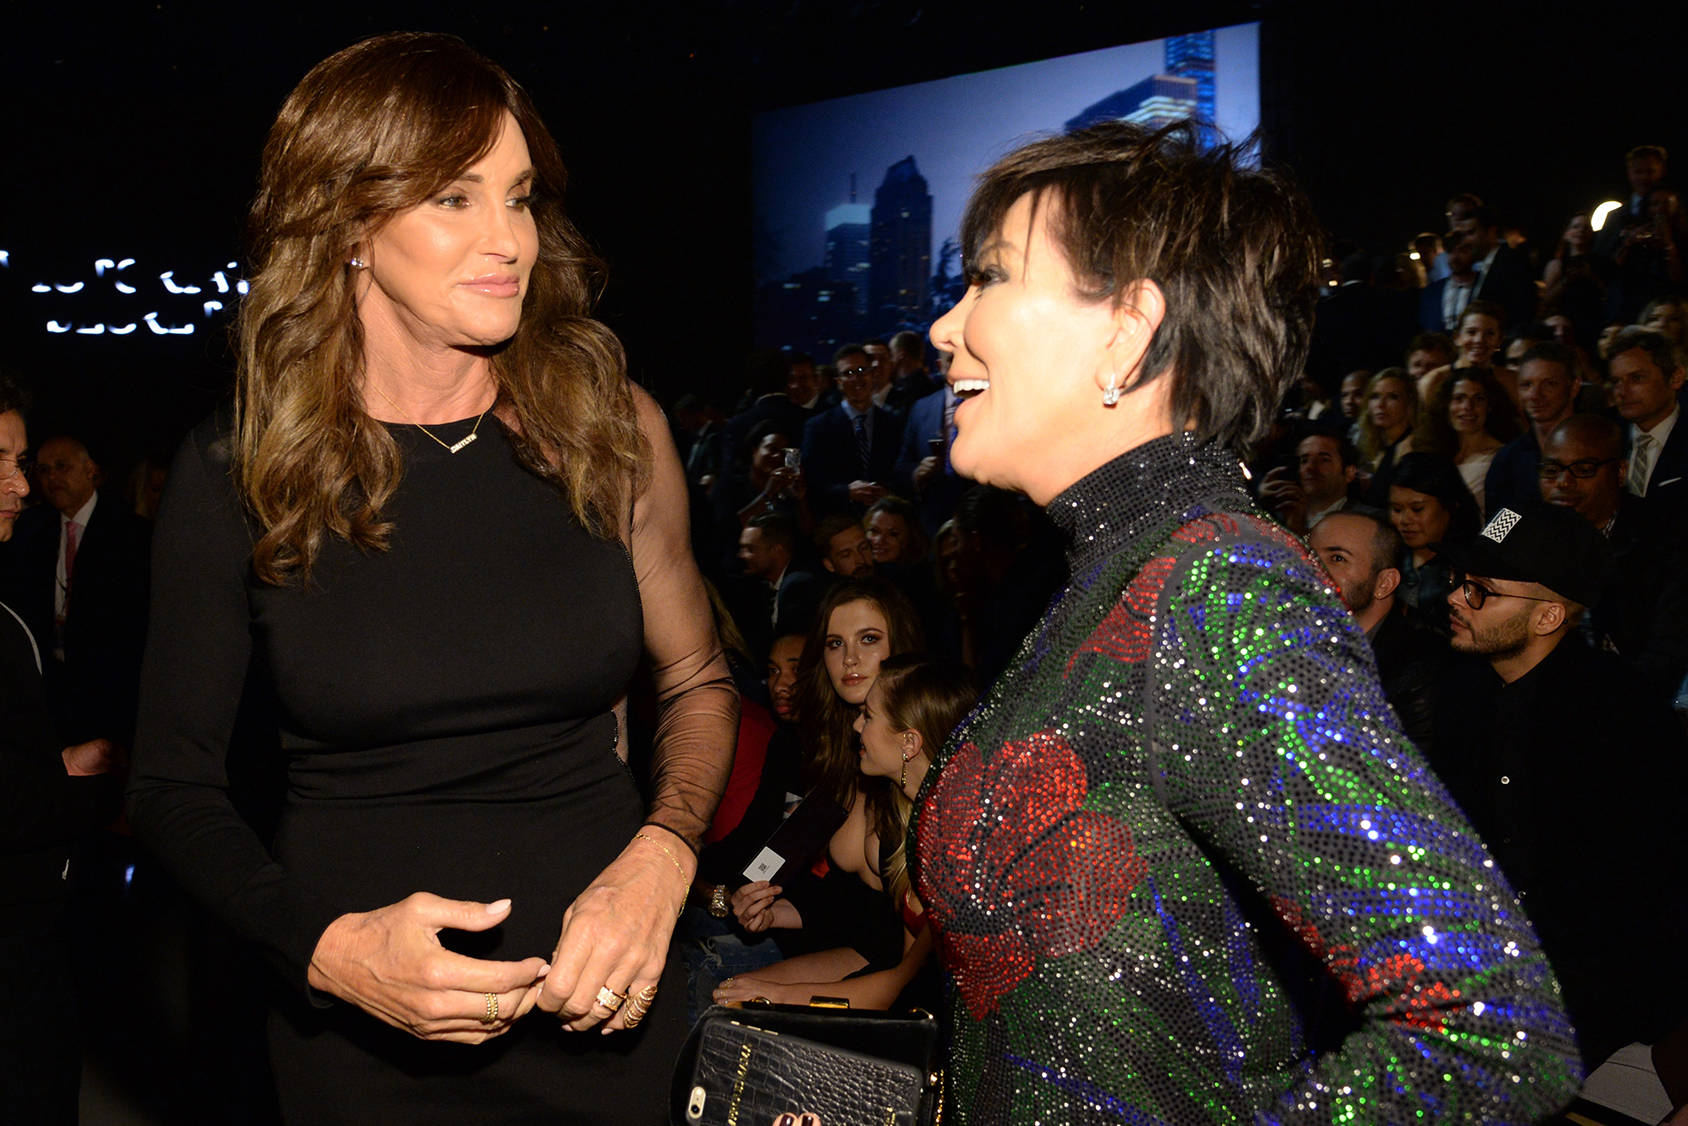 Caitlyn and Kris Jenner cheering on daughter Kendall Jenner, Getty Images.